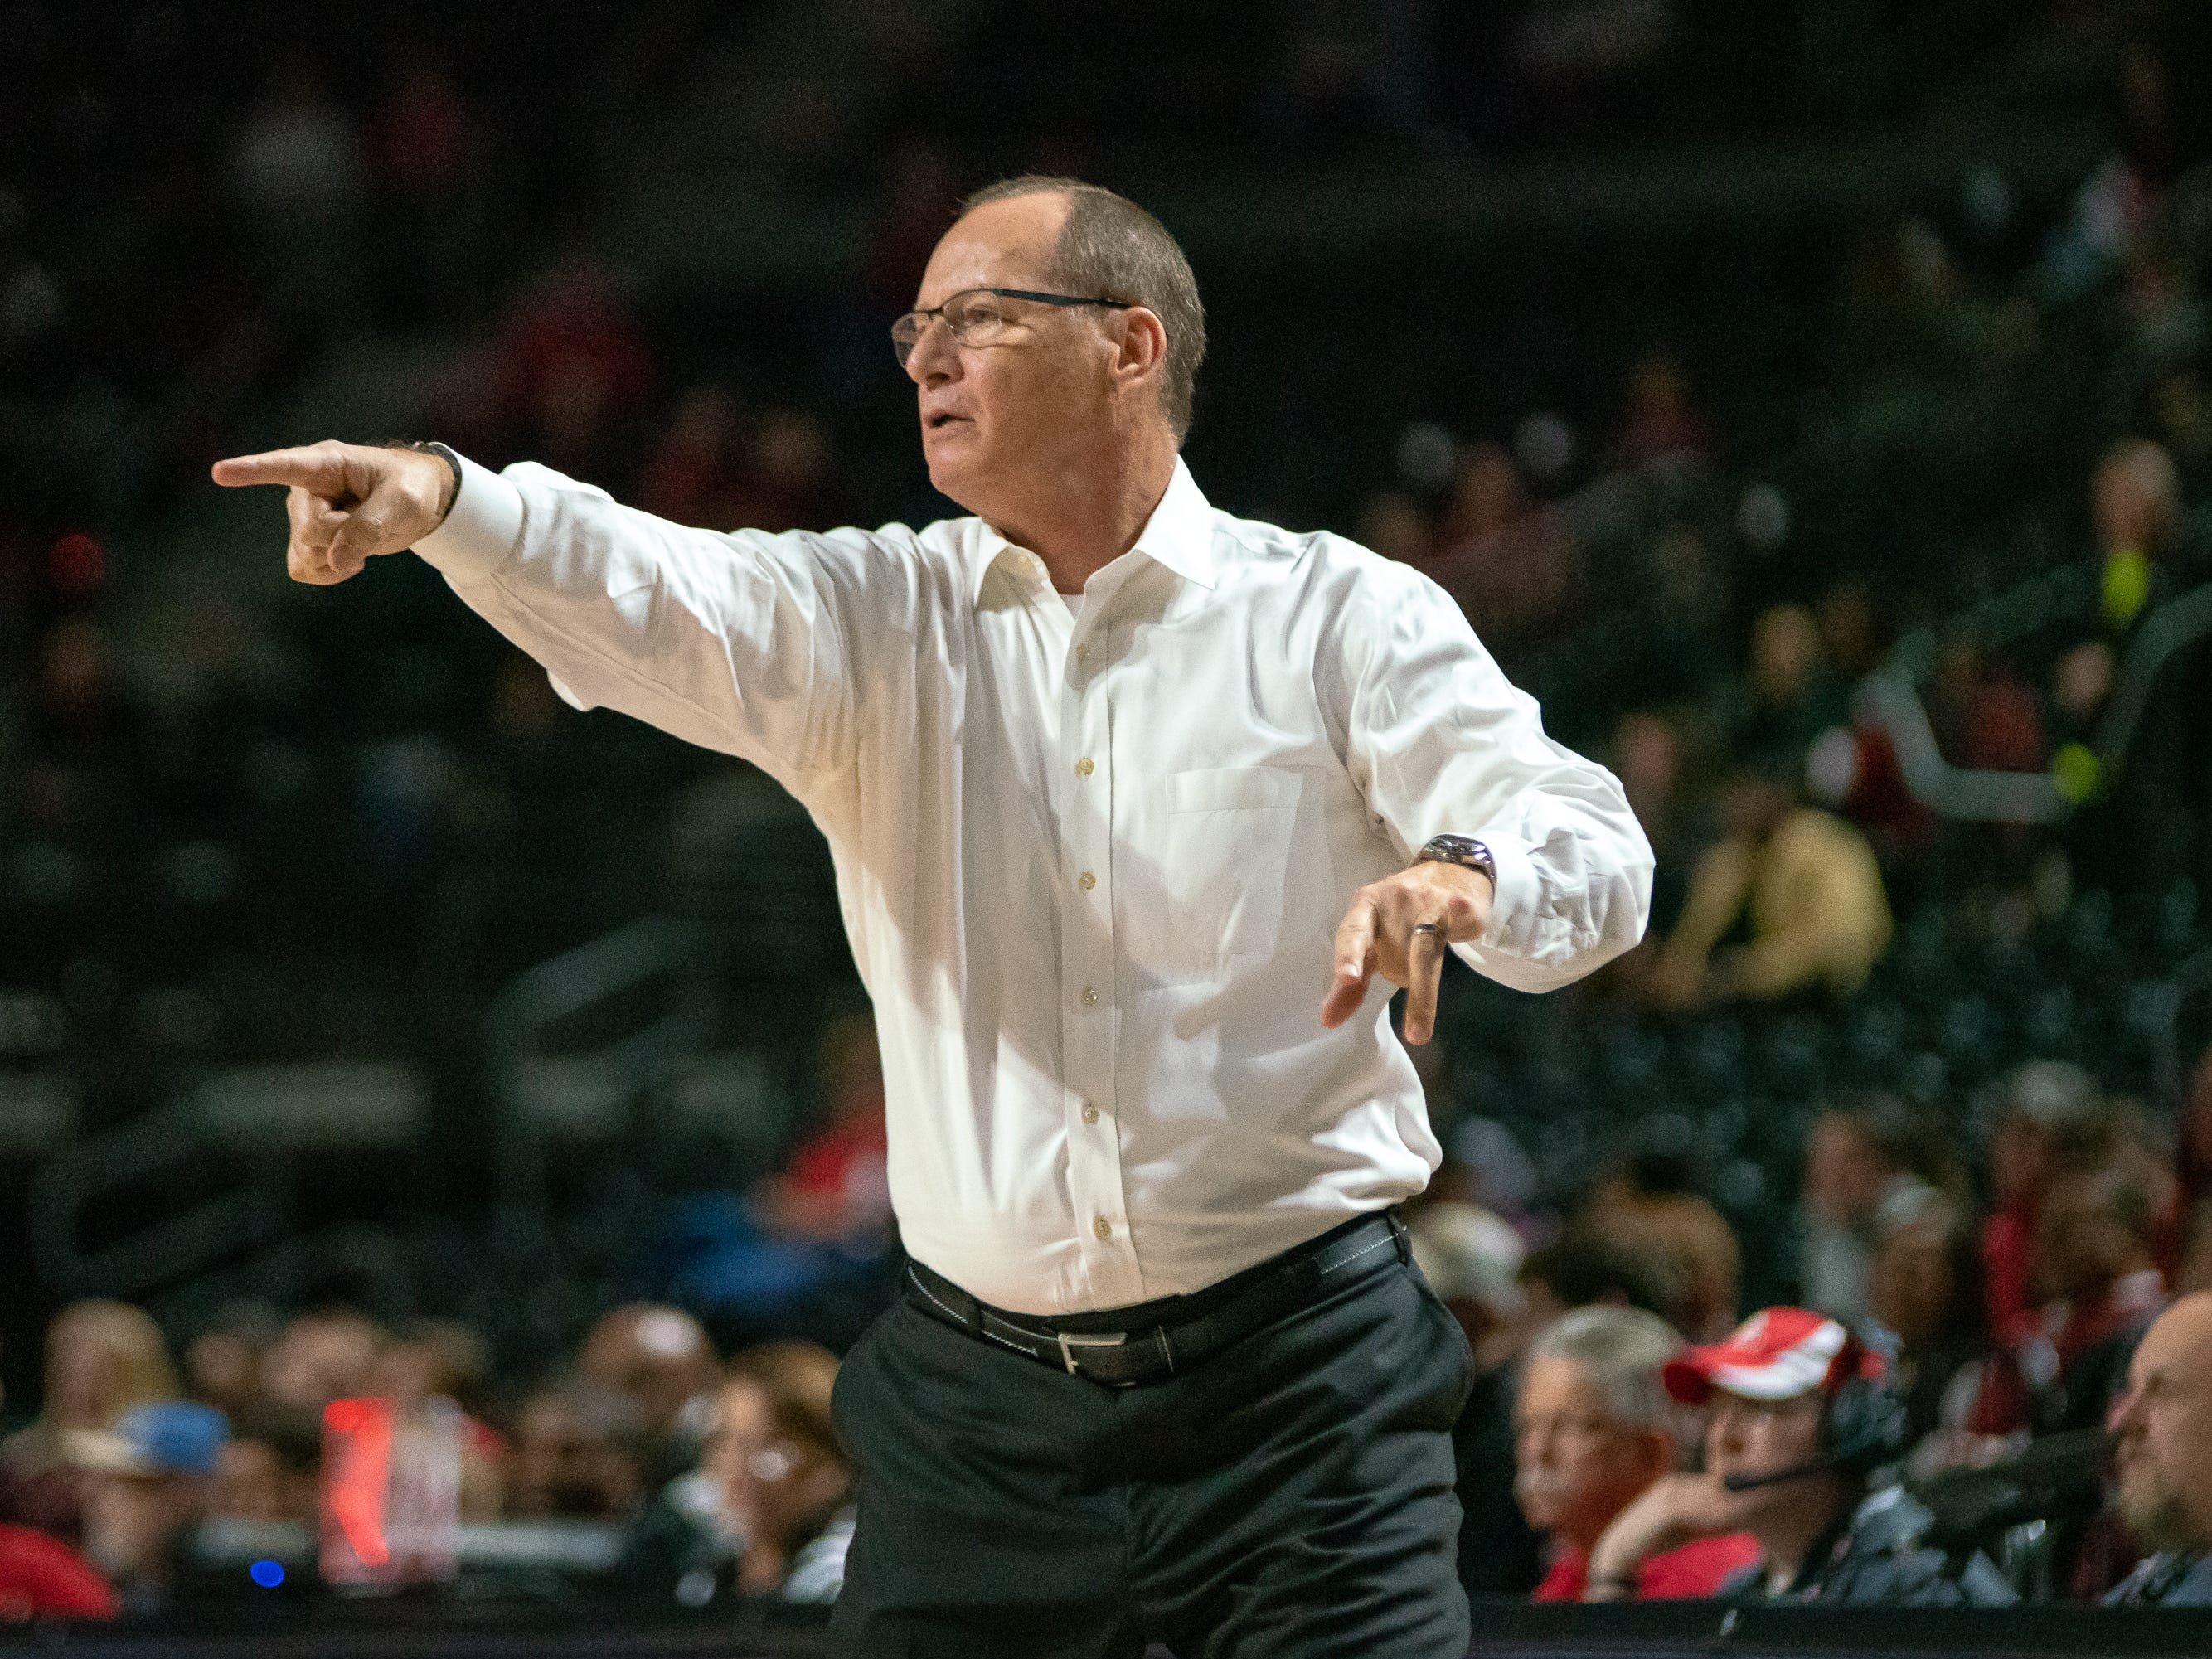 UL's head coach Bob Marlin directs his team from the sidelines as the Ragin' Cajuns take on the Troy Trojans at the Cajundome on Jan. 26, 2019.